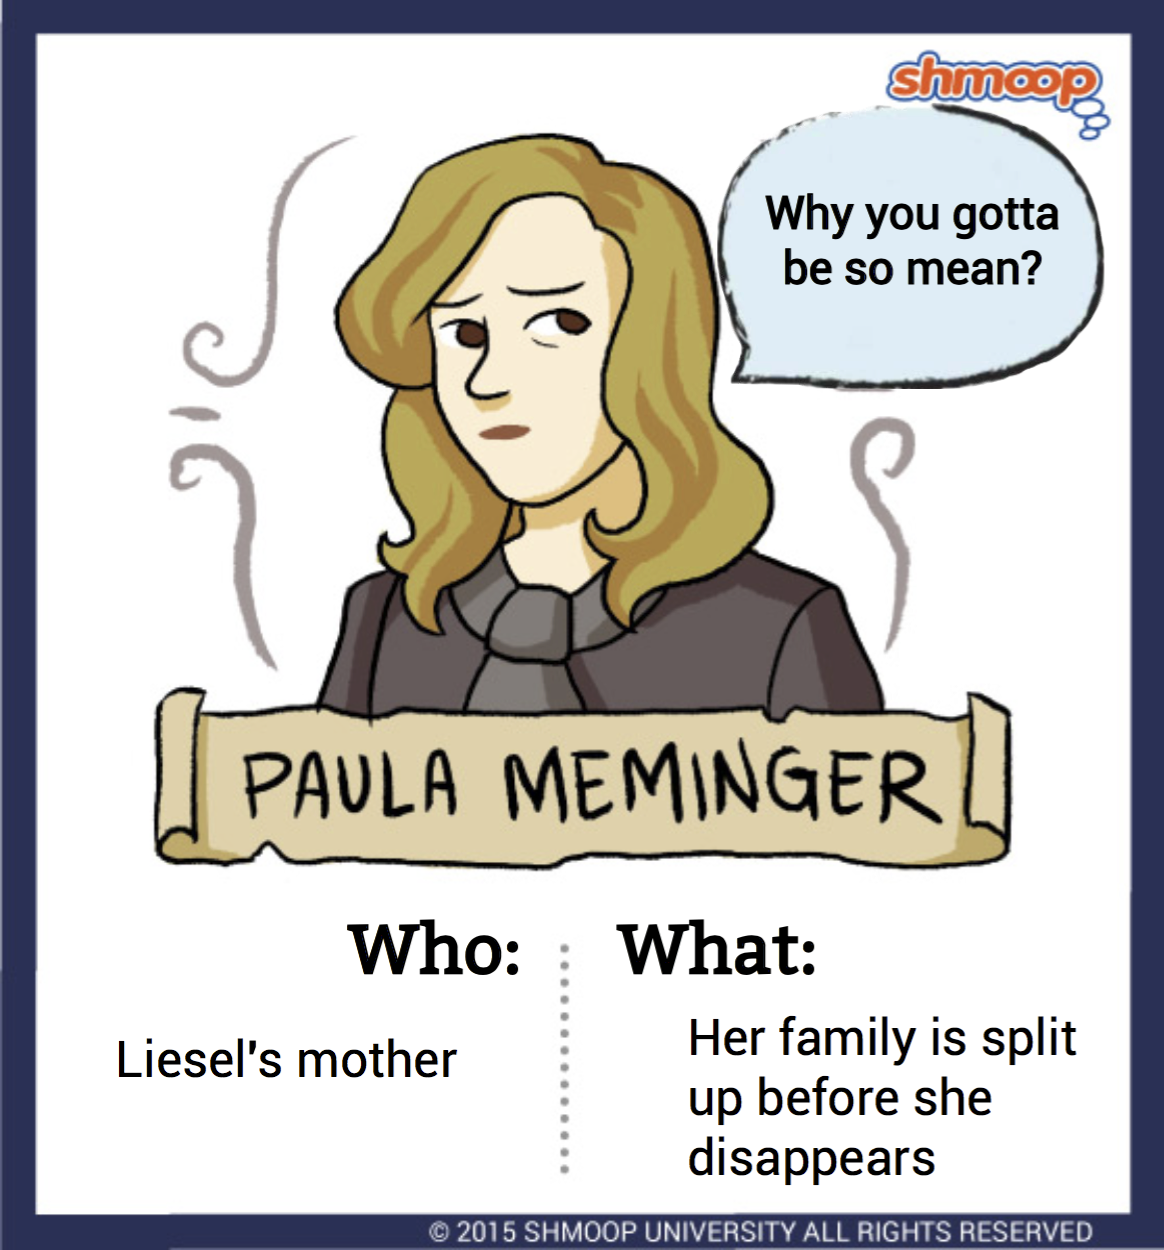 paula meminger in the book thief character analysis